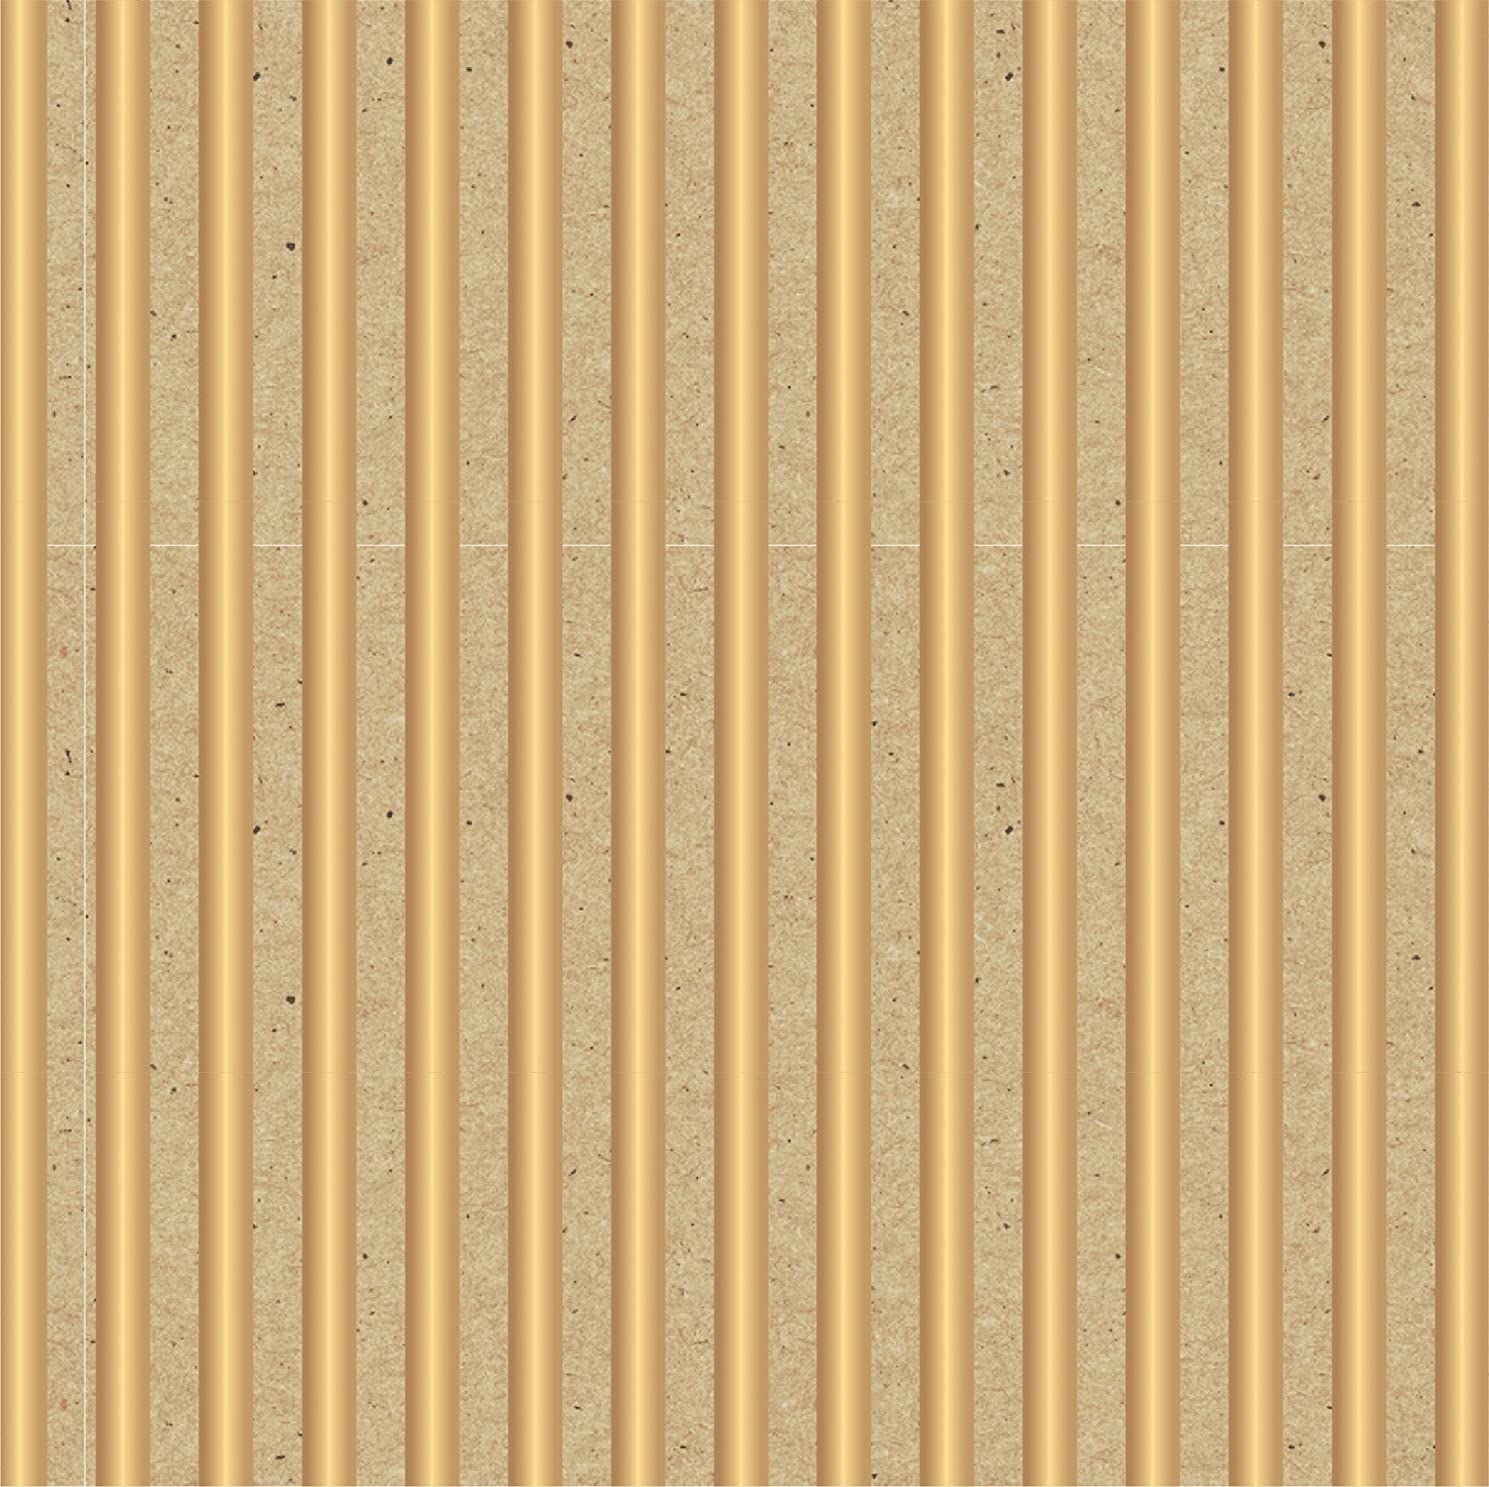 American Crafts Specialty Paper 12 Pack of 8.5 x 11 Inch Kraft Gold Stripes, Piece